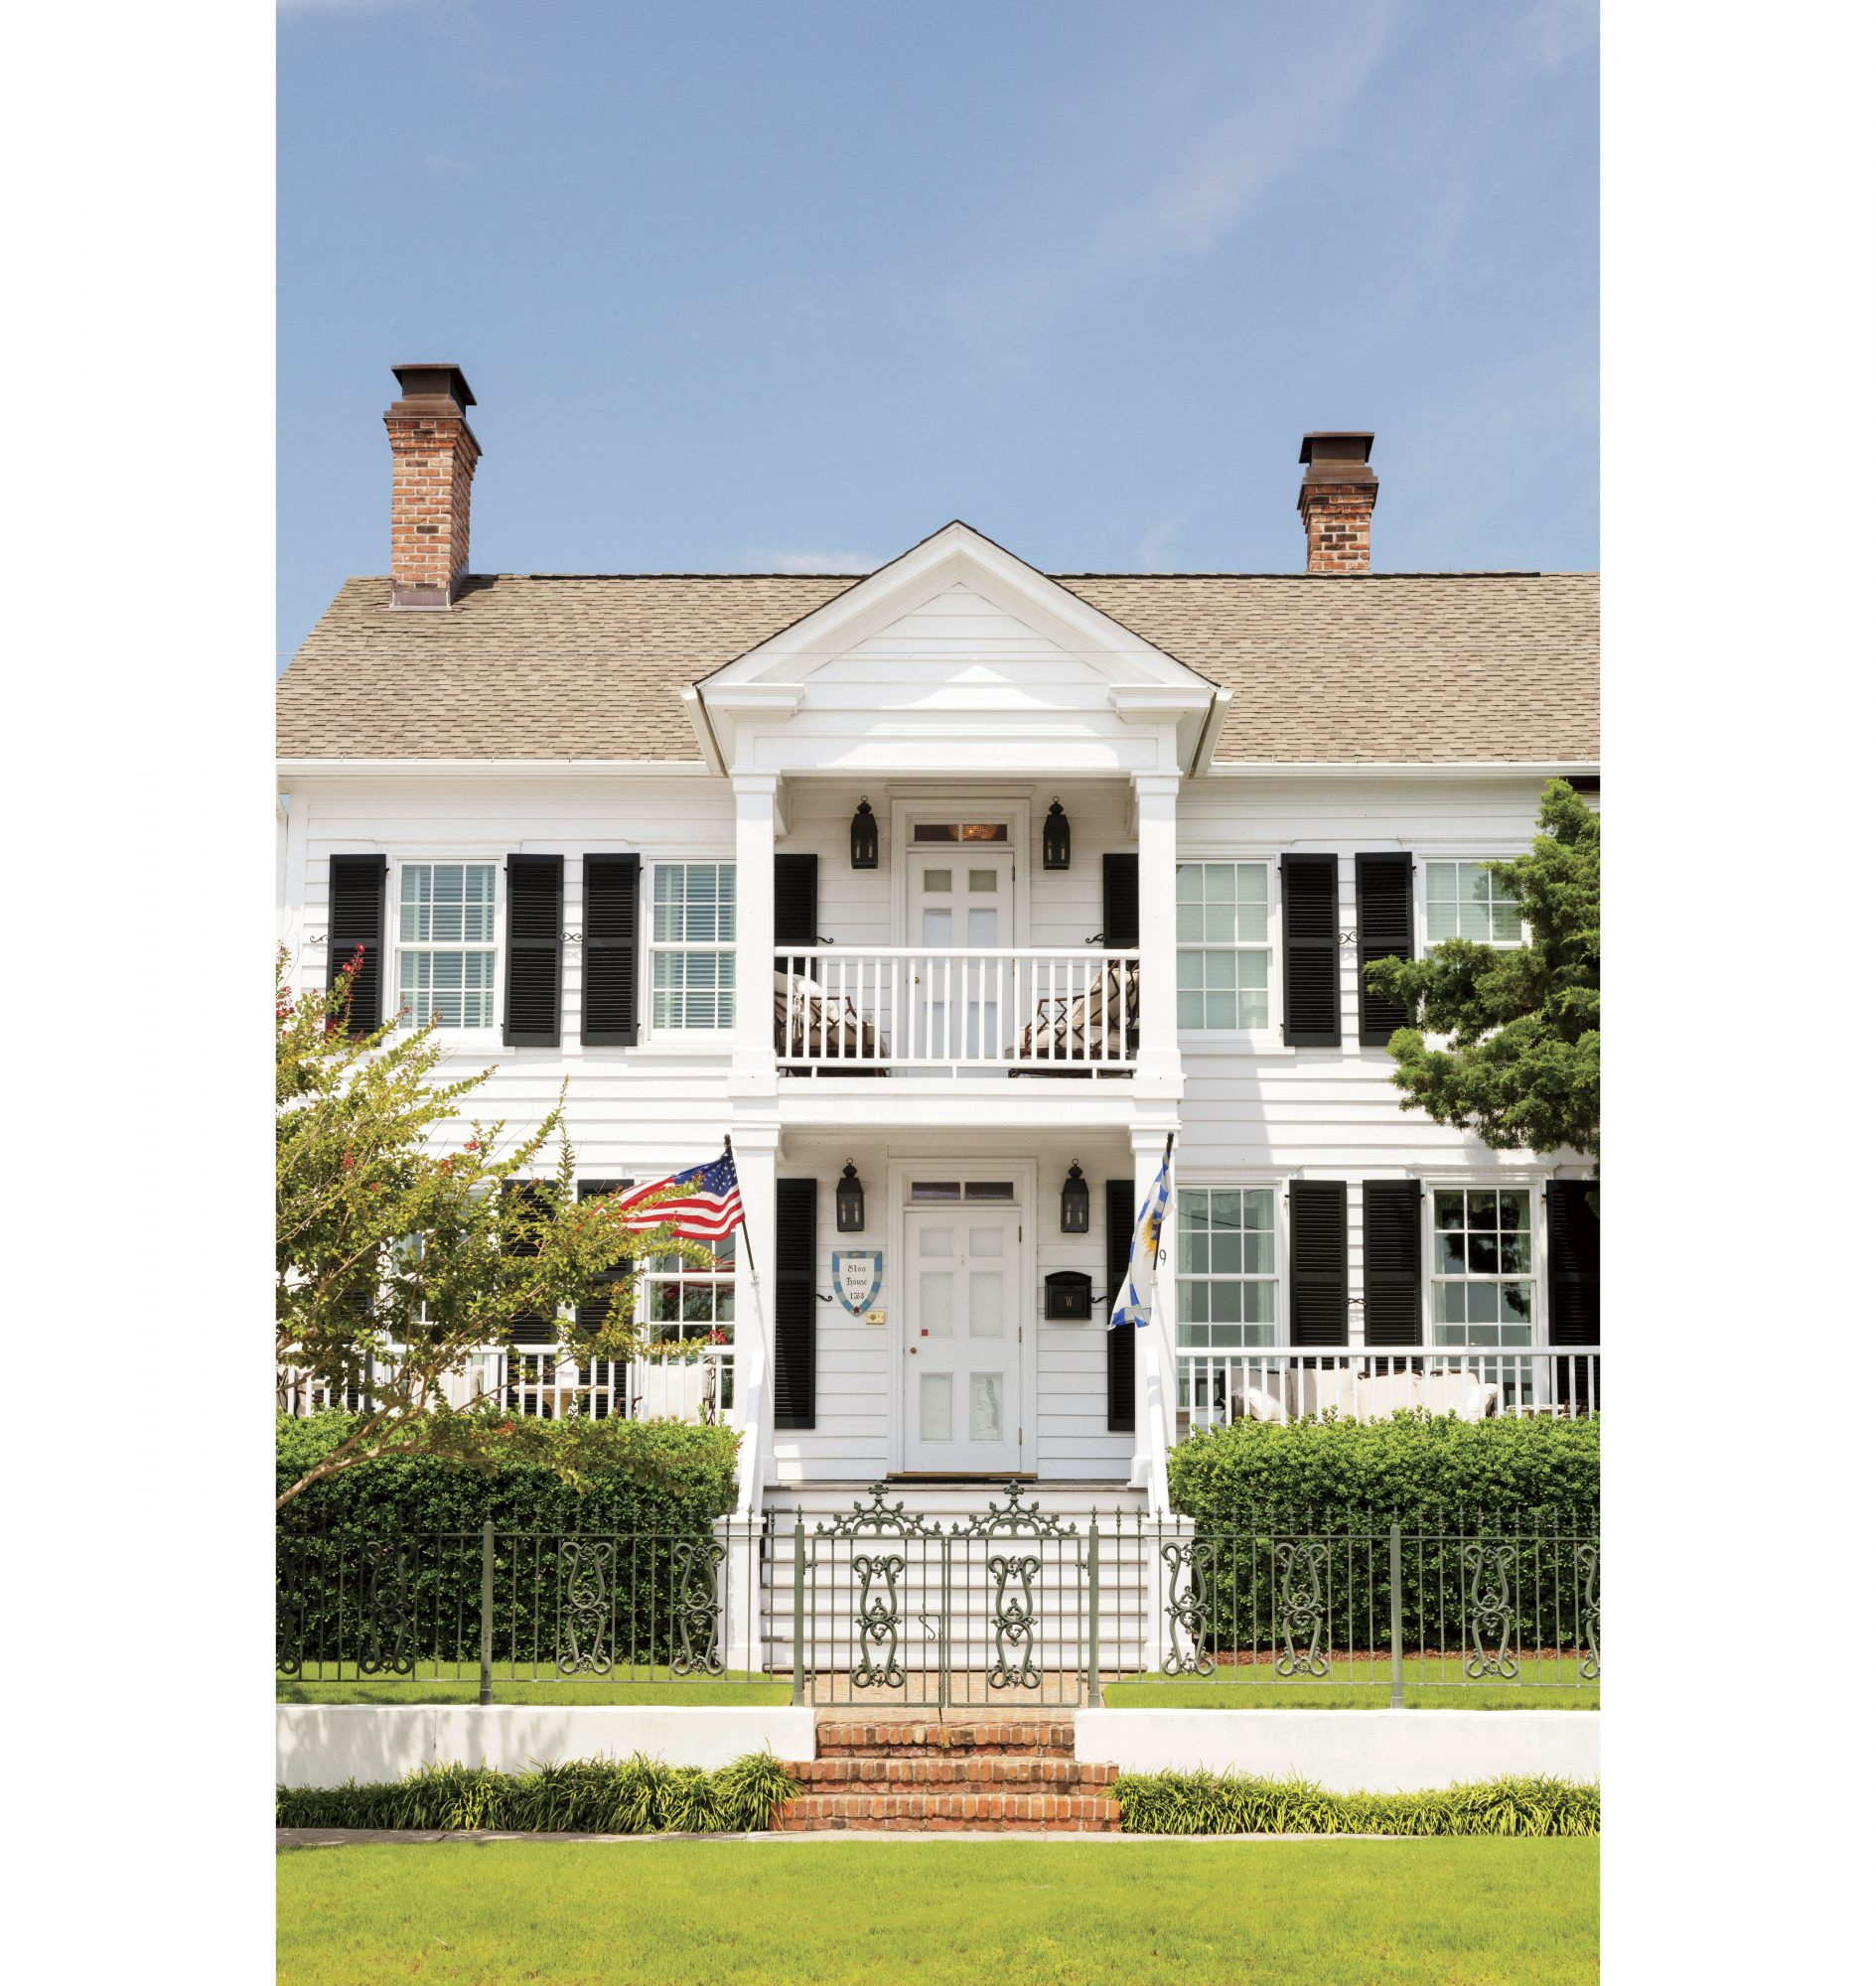 Historical Home in Beaufort, NC